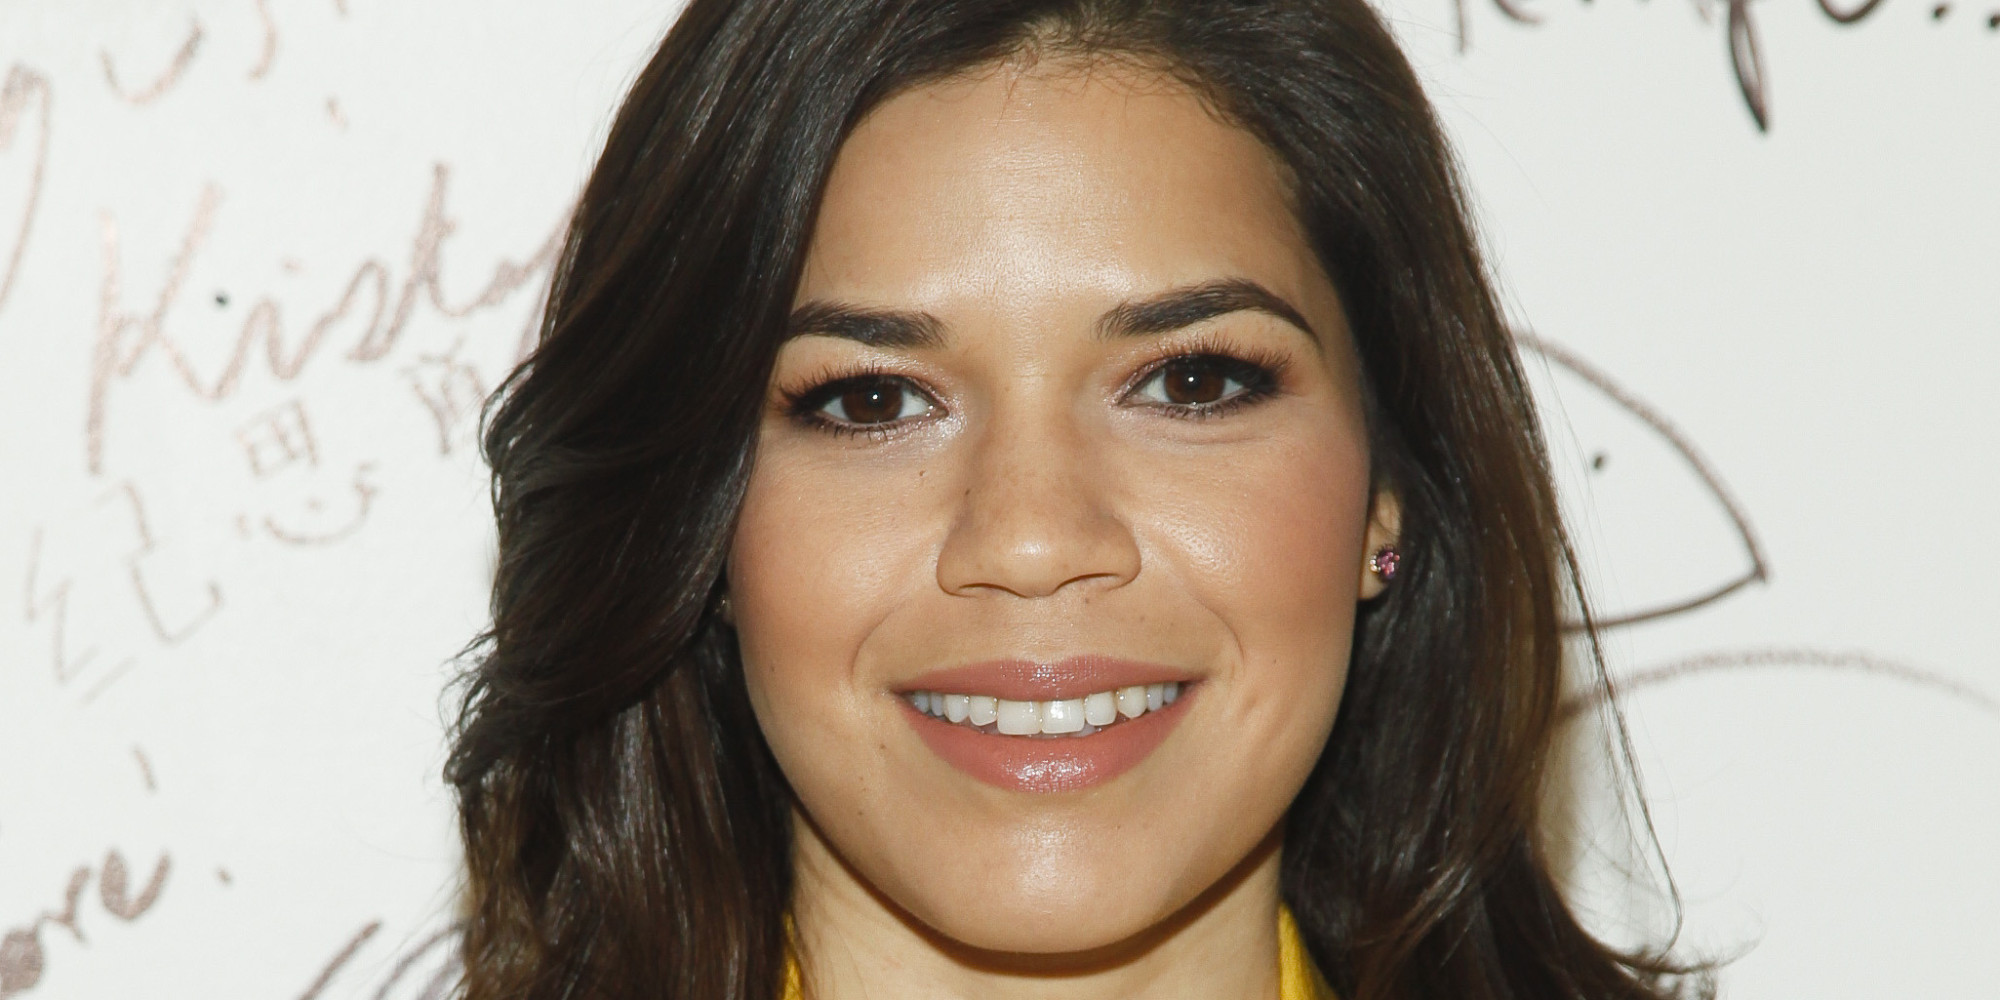 america ferrera good wifeamerica ferrera weight loss, america ferrera good wife, america ferrera and eric mabius, america ferrera and her husband, america ferrera good wife episodes, america ferrera movies, america ferrera vitalii, america ferrera tumblr, america ferrera chicago, america ferrera wiki, america ferrera washington dc, america ferrera instagram, america ferrera 2016, america ferrera youtube